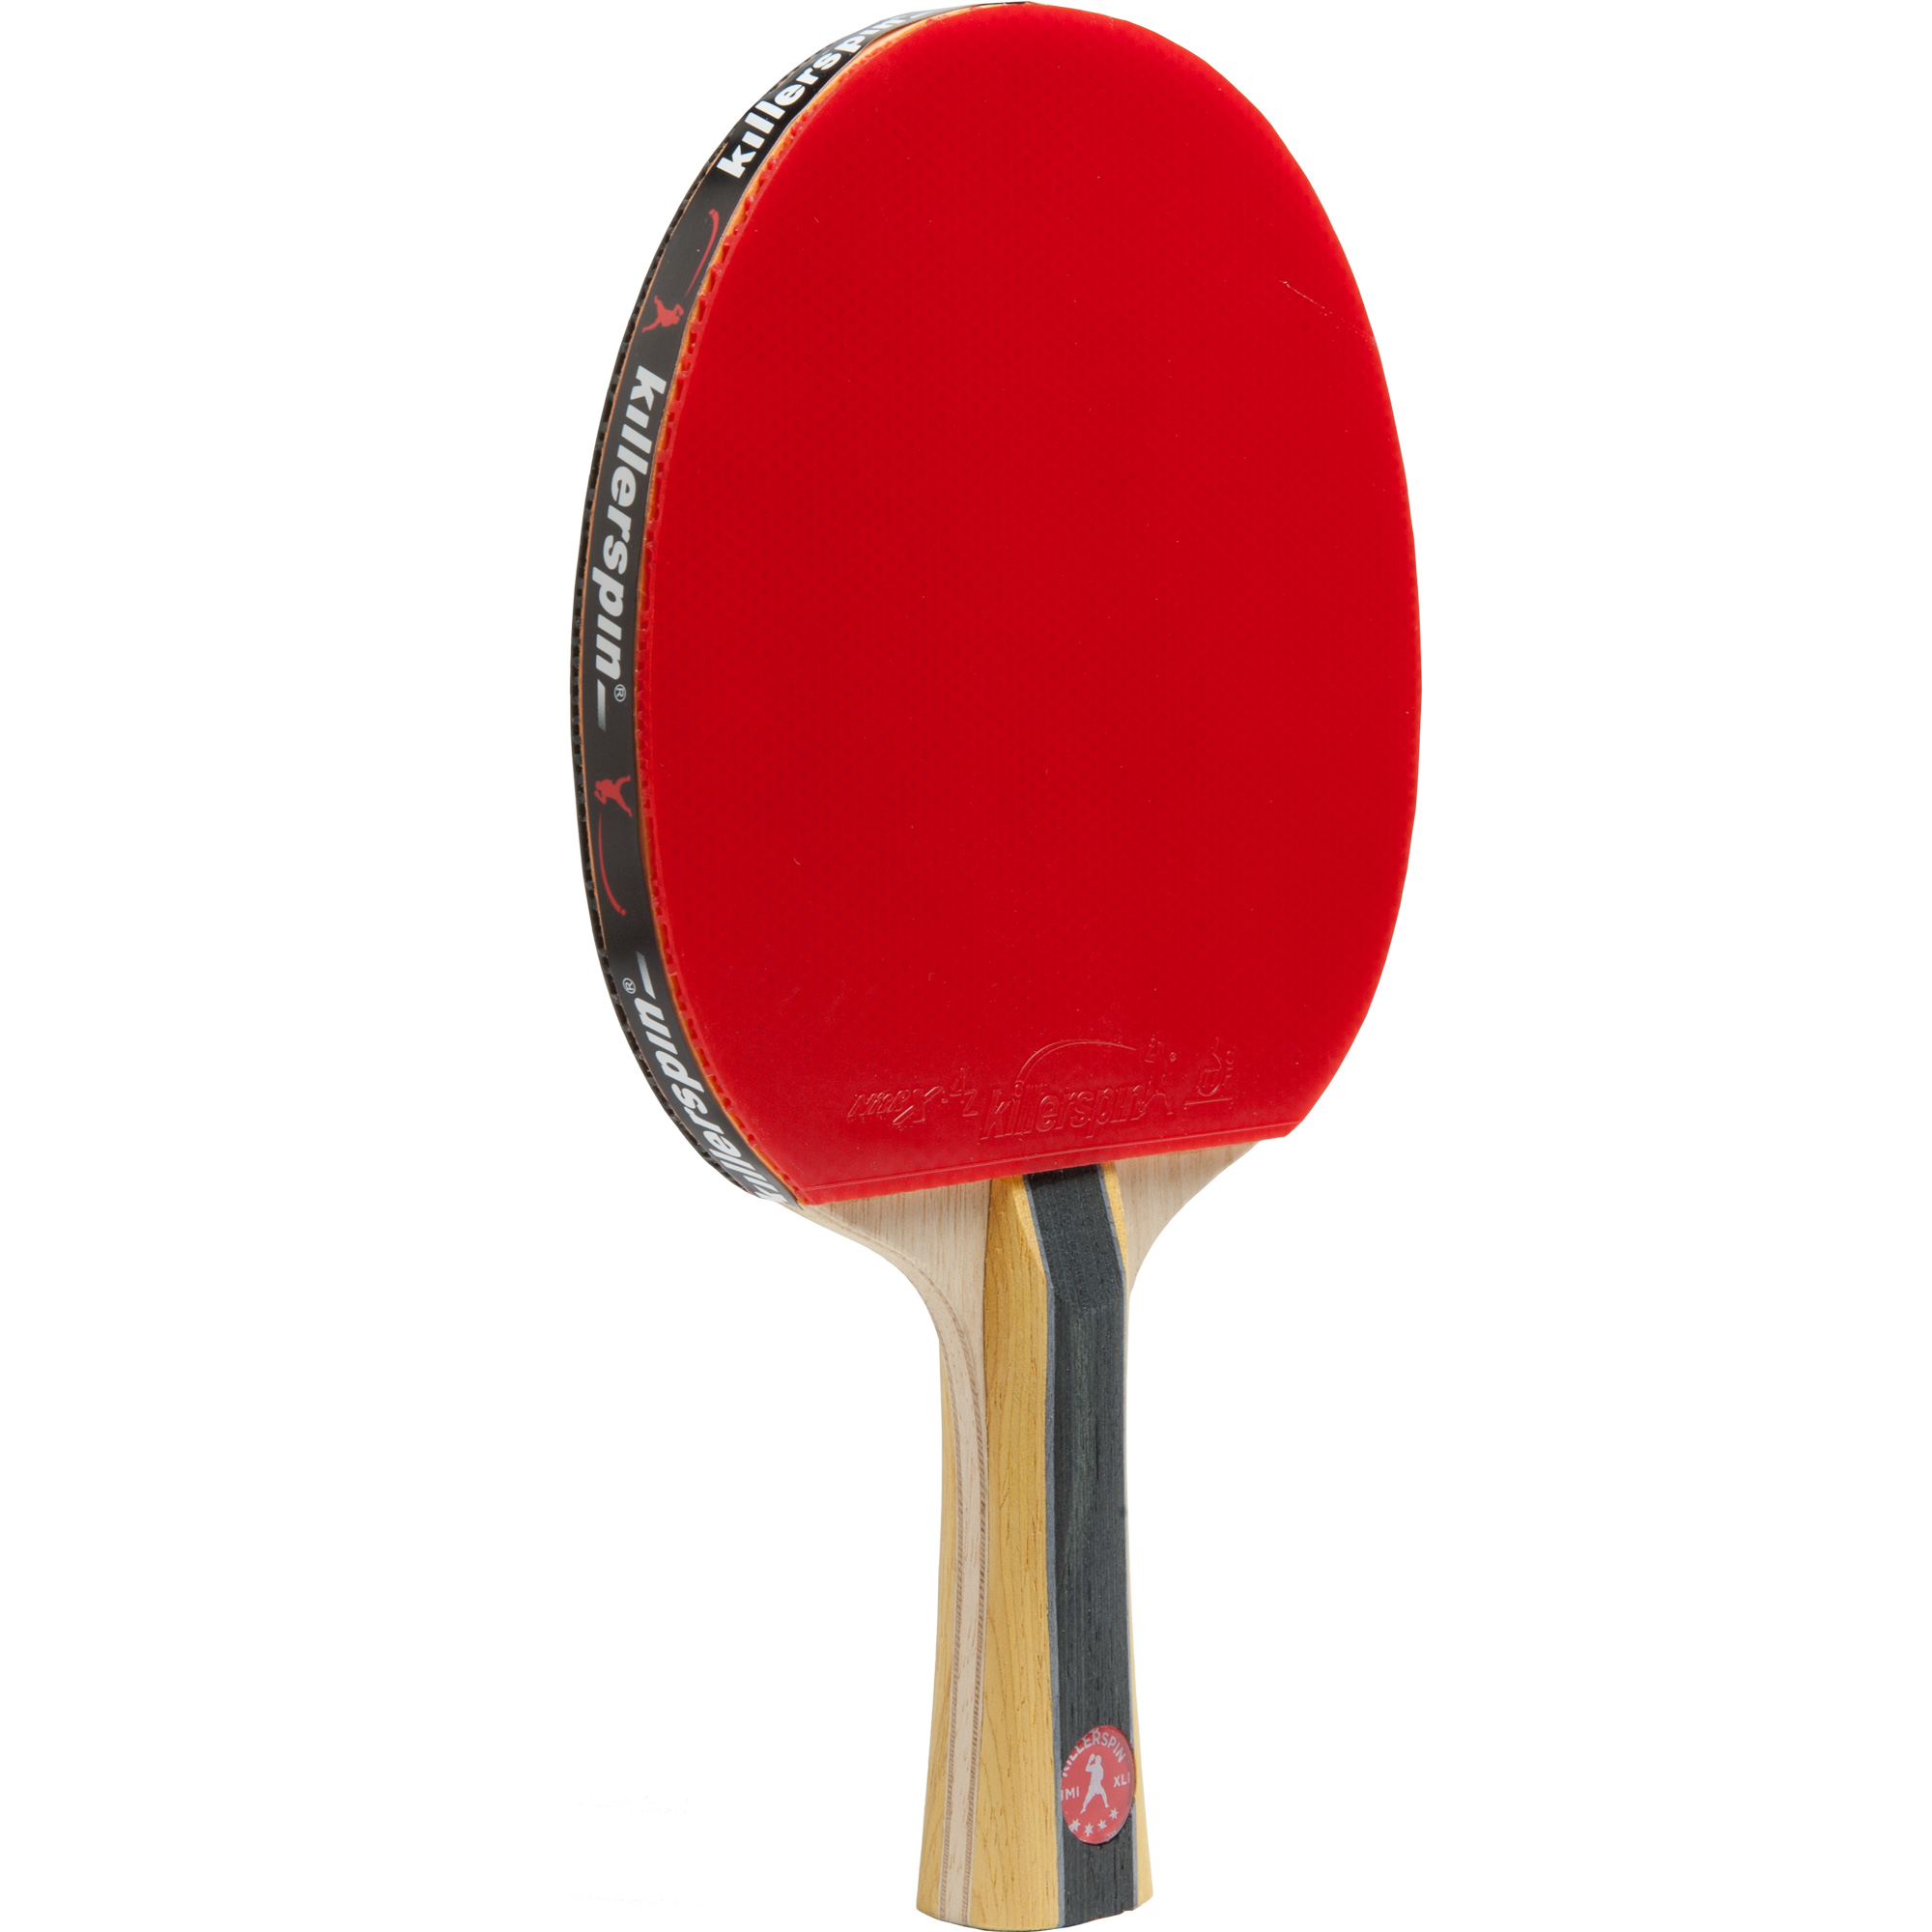 Killerspin JET600 SPIN N1 Intermediate Table Tennis Paddle, Red